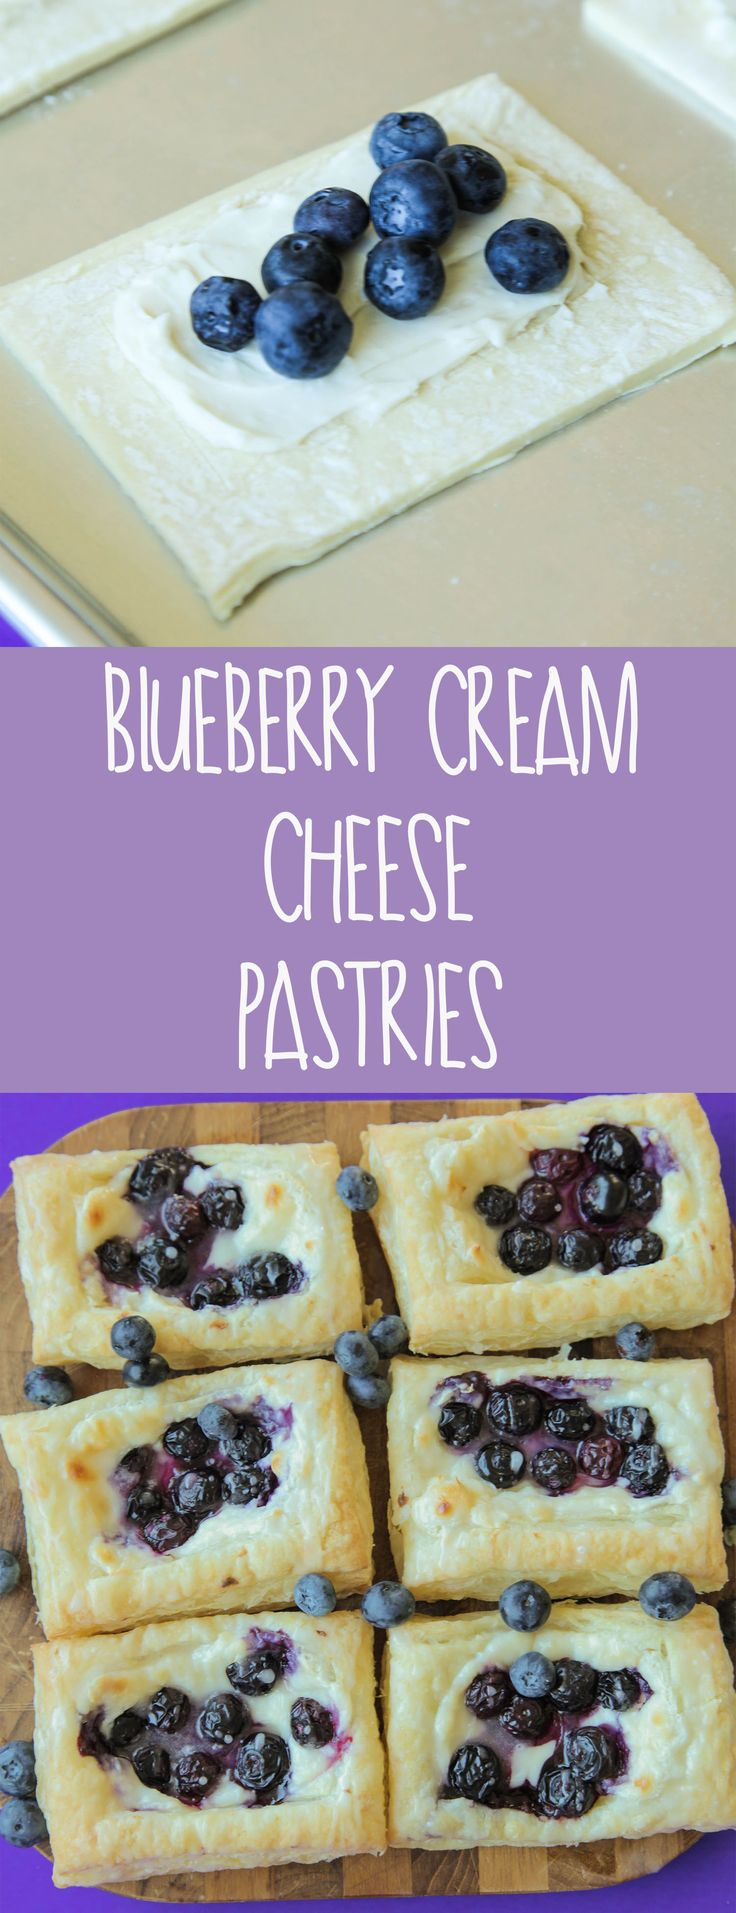 Blueberry Cream Cheese Pastry (Vegan) - These simple and delicious blueberry pastries will taste just like they came from a pastry shop but require just a few at home ingredients for a simple tasty treat.